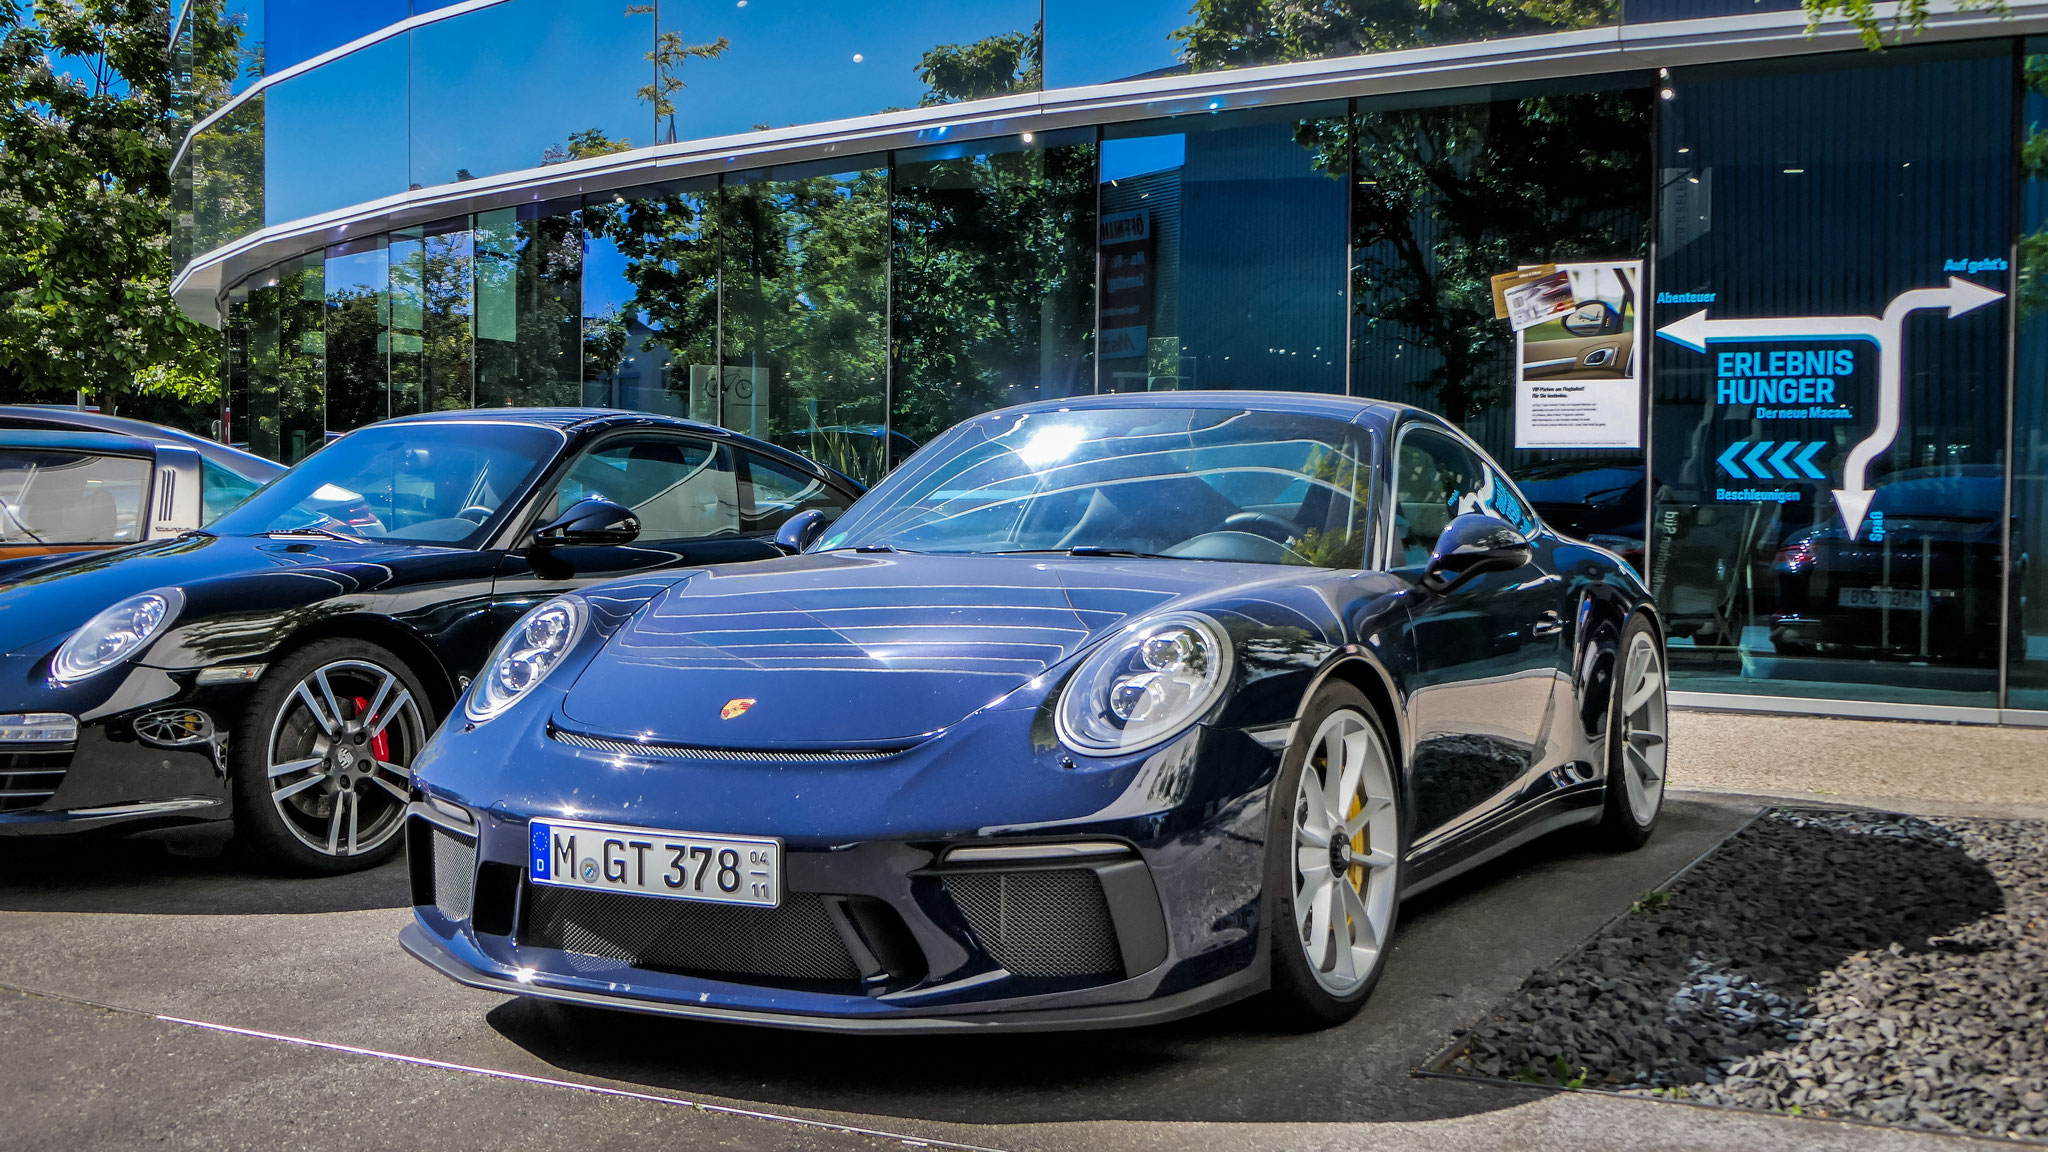 Porsche 991 GT3 Touring Package - M-GT-378